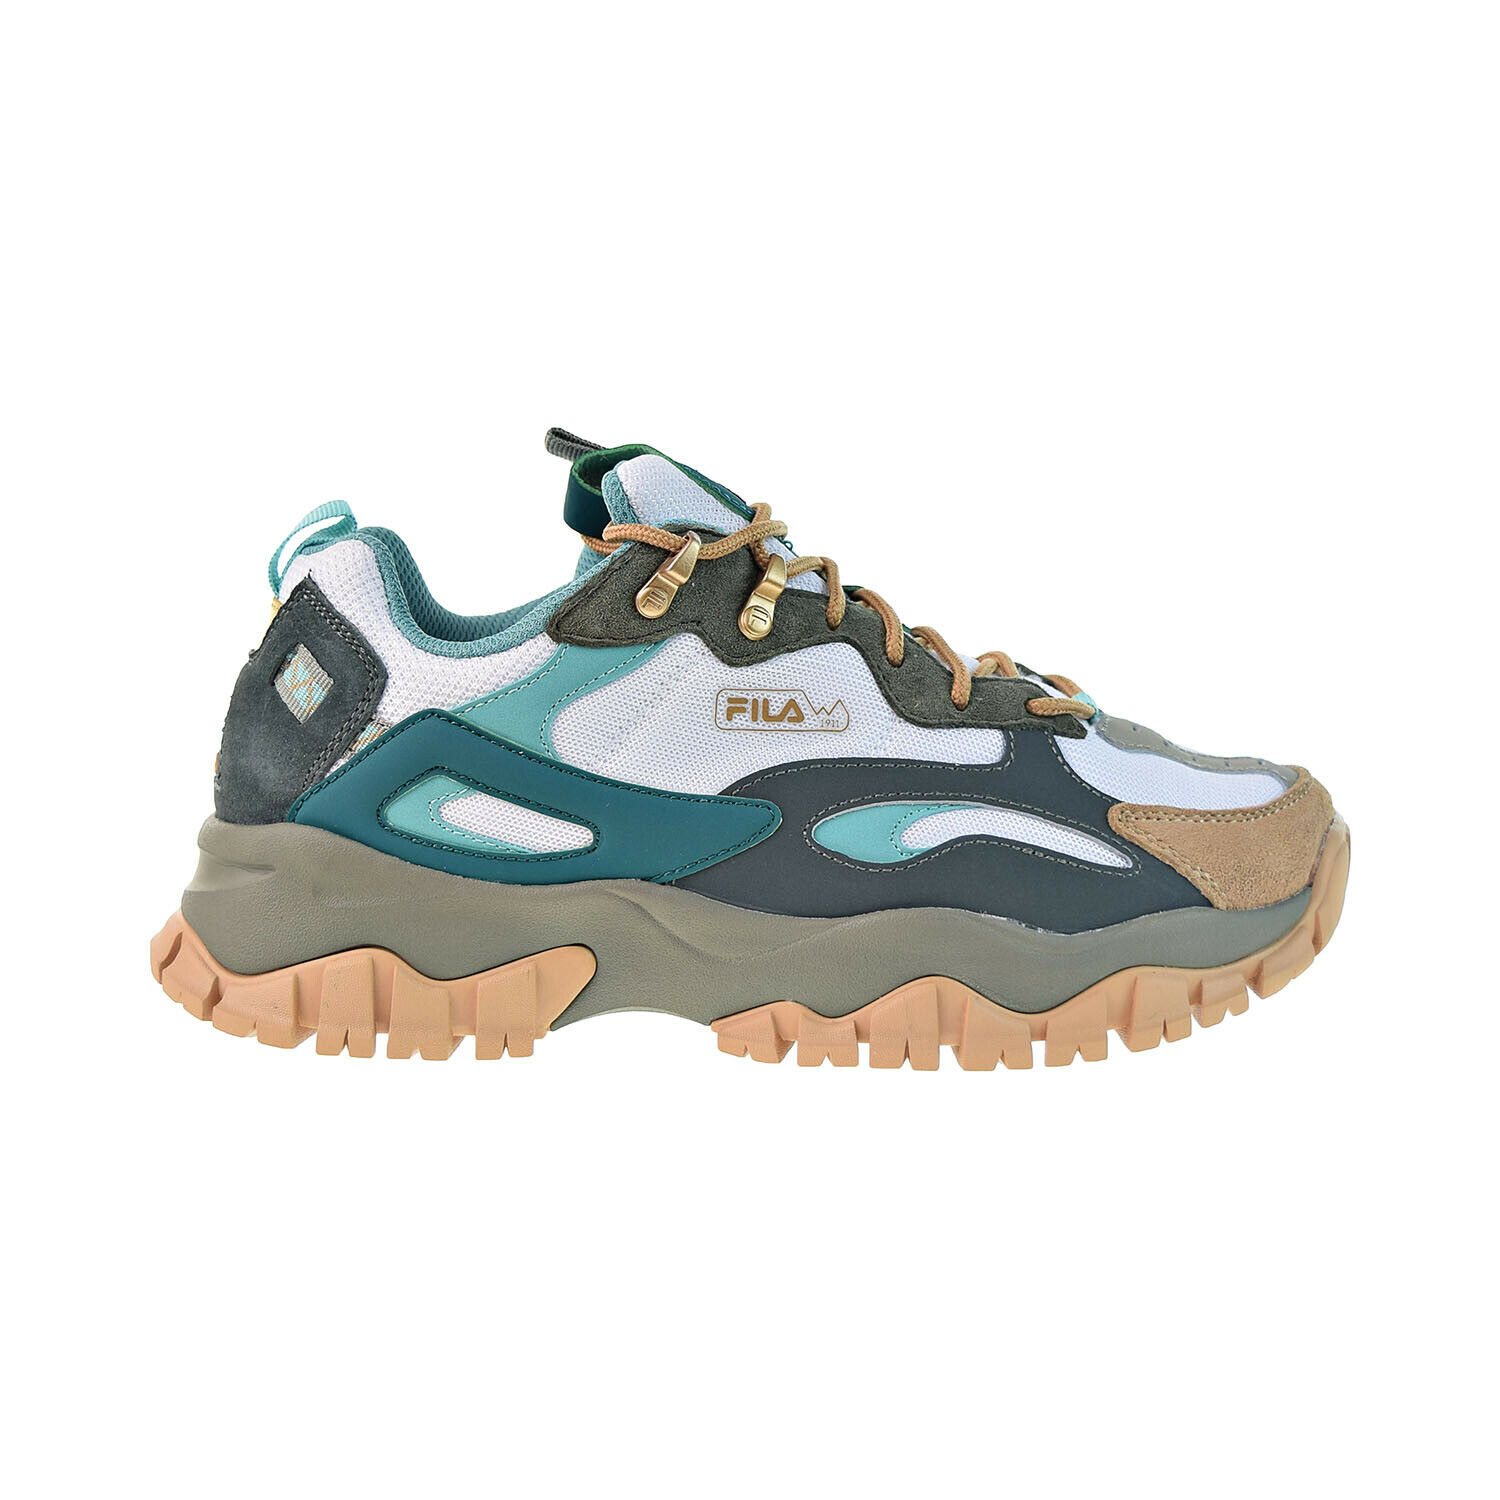 Fila Ray Tracer TR 2 Men's Shoes White